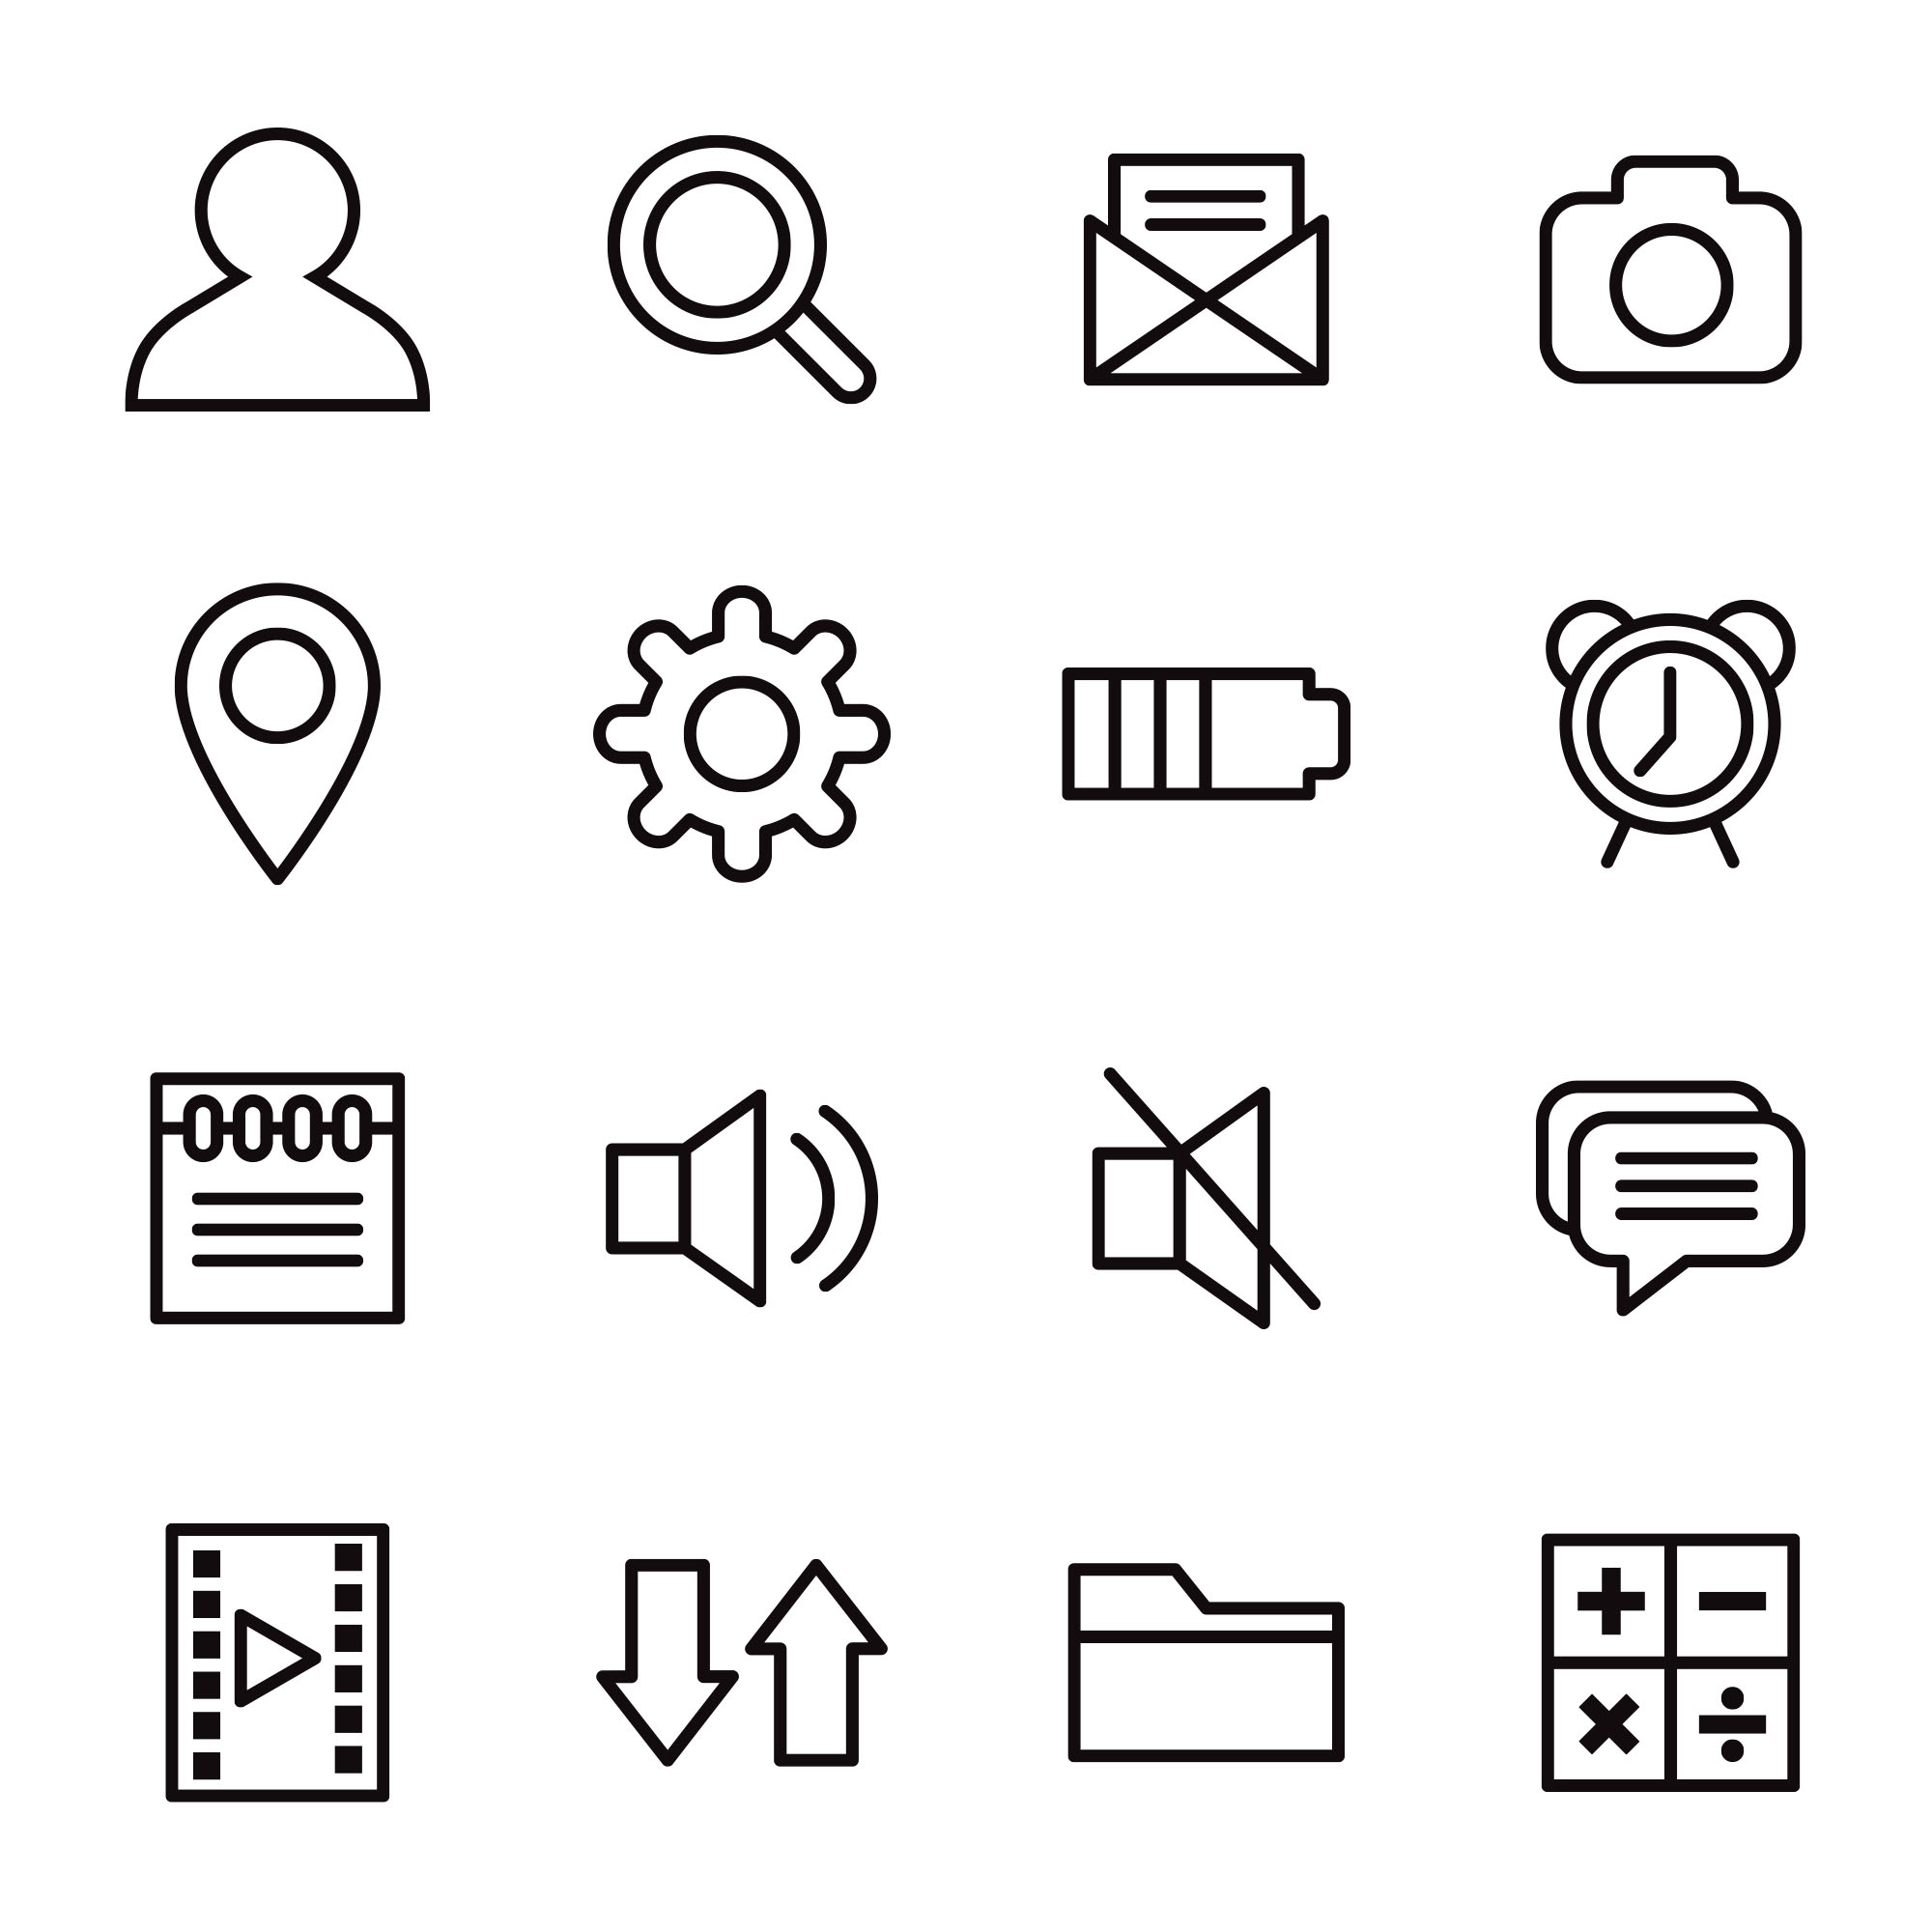 Mobile App Icons - Plain Mode